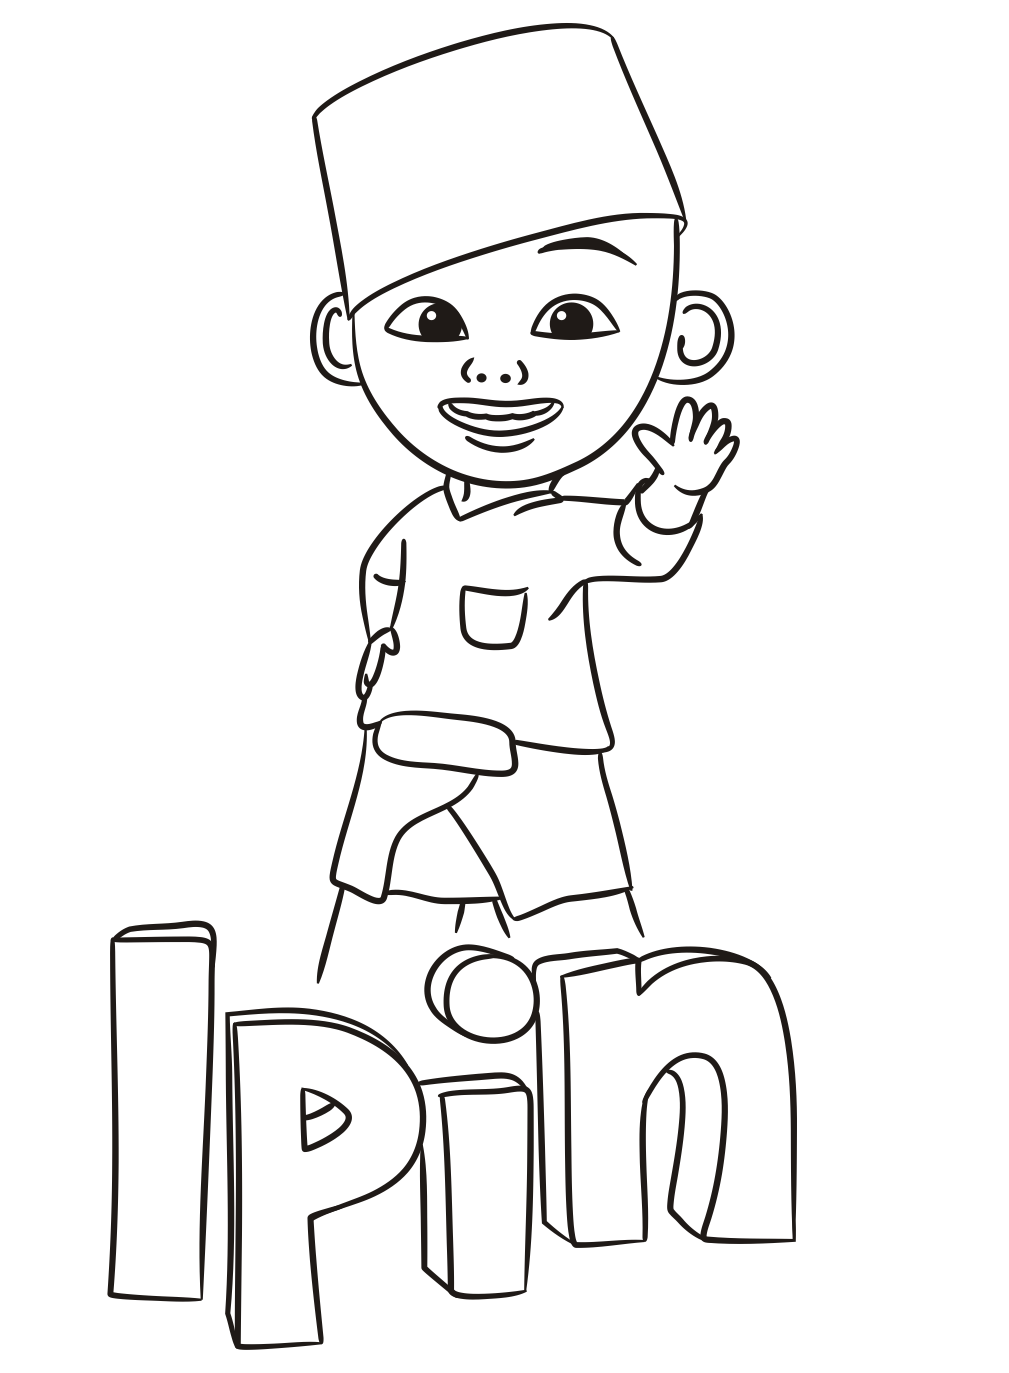 Upin Ipin Coloring Pages Plete Coloring Pages For